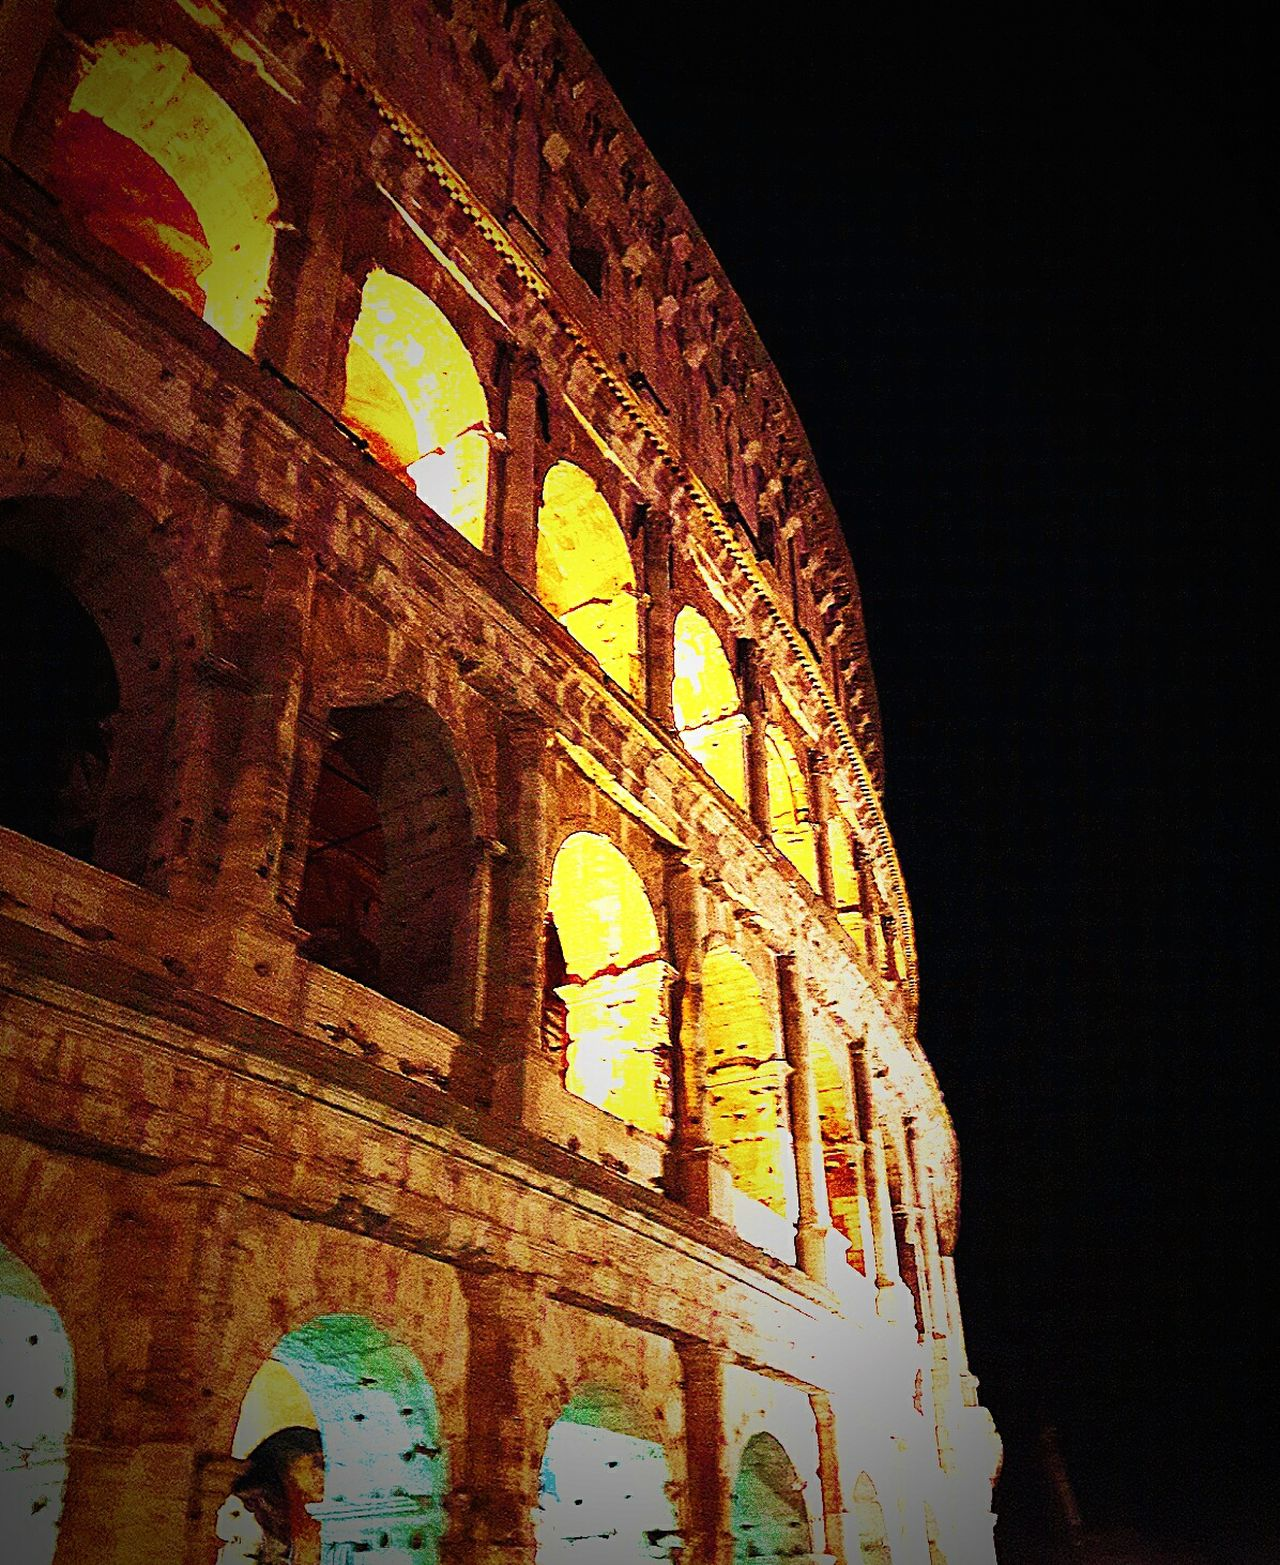 History Architecture Low Angle View Built Structure No People Travel Destinations Building Exterior Night Outdoors Ancient Civilization Roma Caput Mundi Roma Rome Italy🇮🇹 Ancient Colosseo Colosseo❤ Colosseum Colosseo Roma Colosseoroma Colosseo. Colosseo By Night Colosseo, Rome,Fuji X Colosseo Arena High Angle View Low Angle View